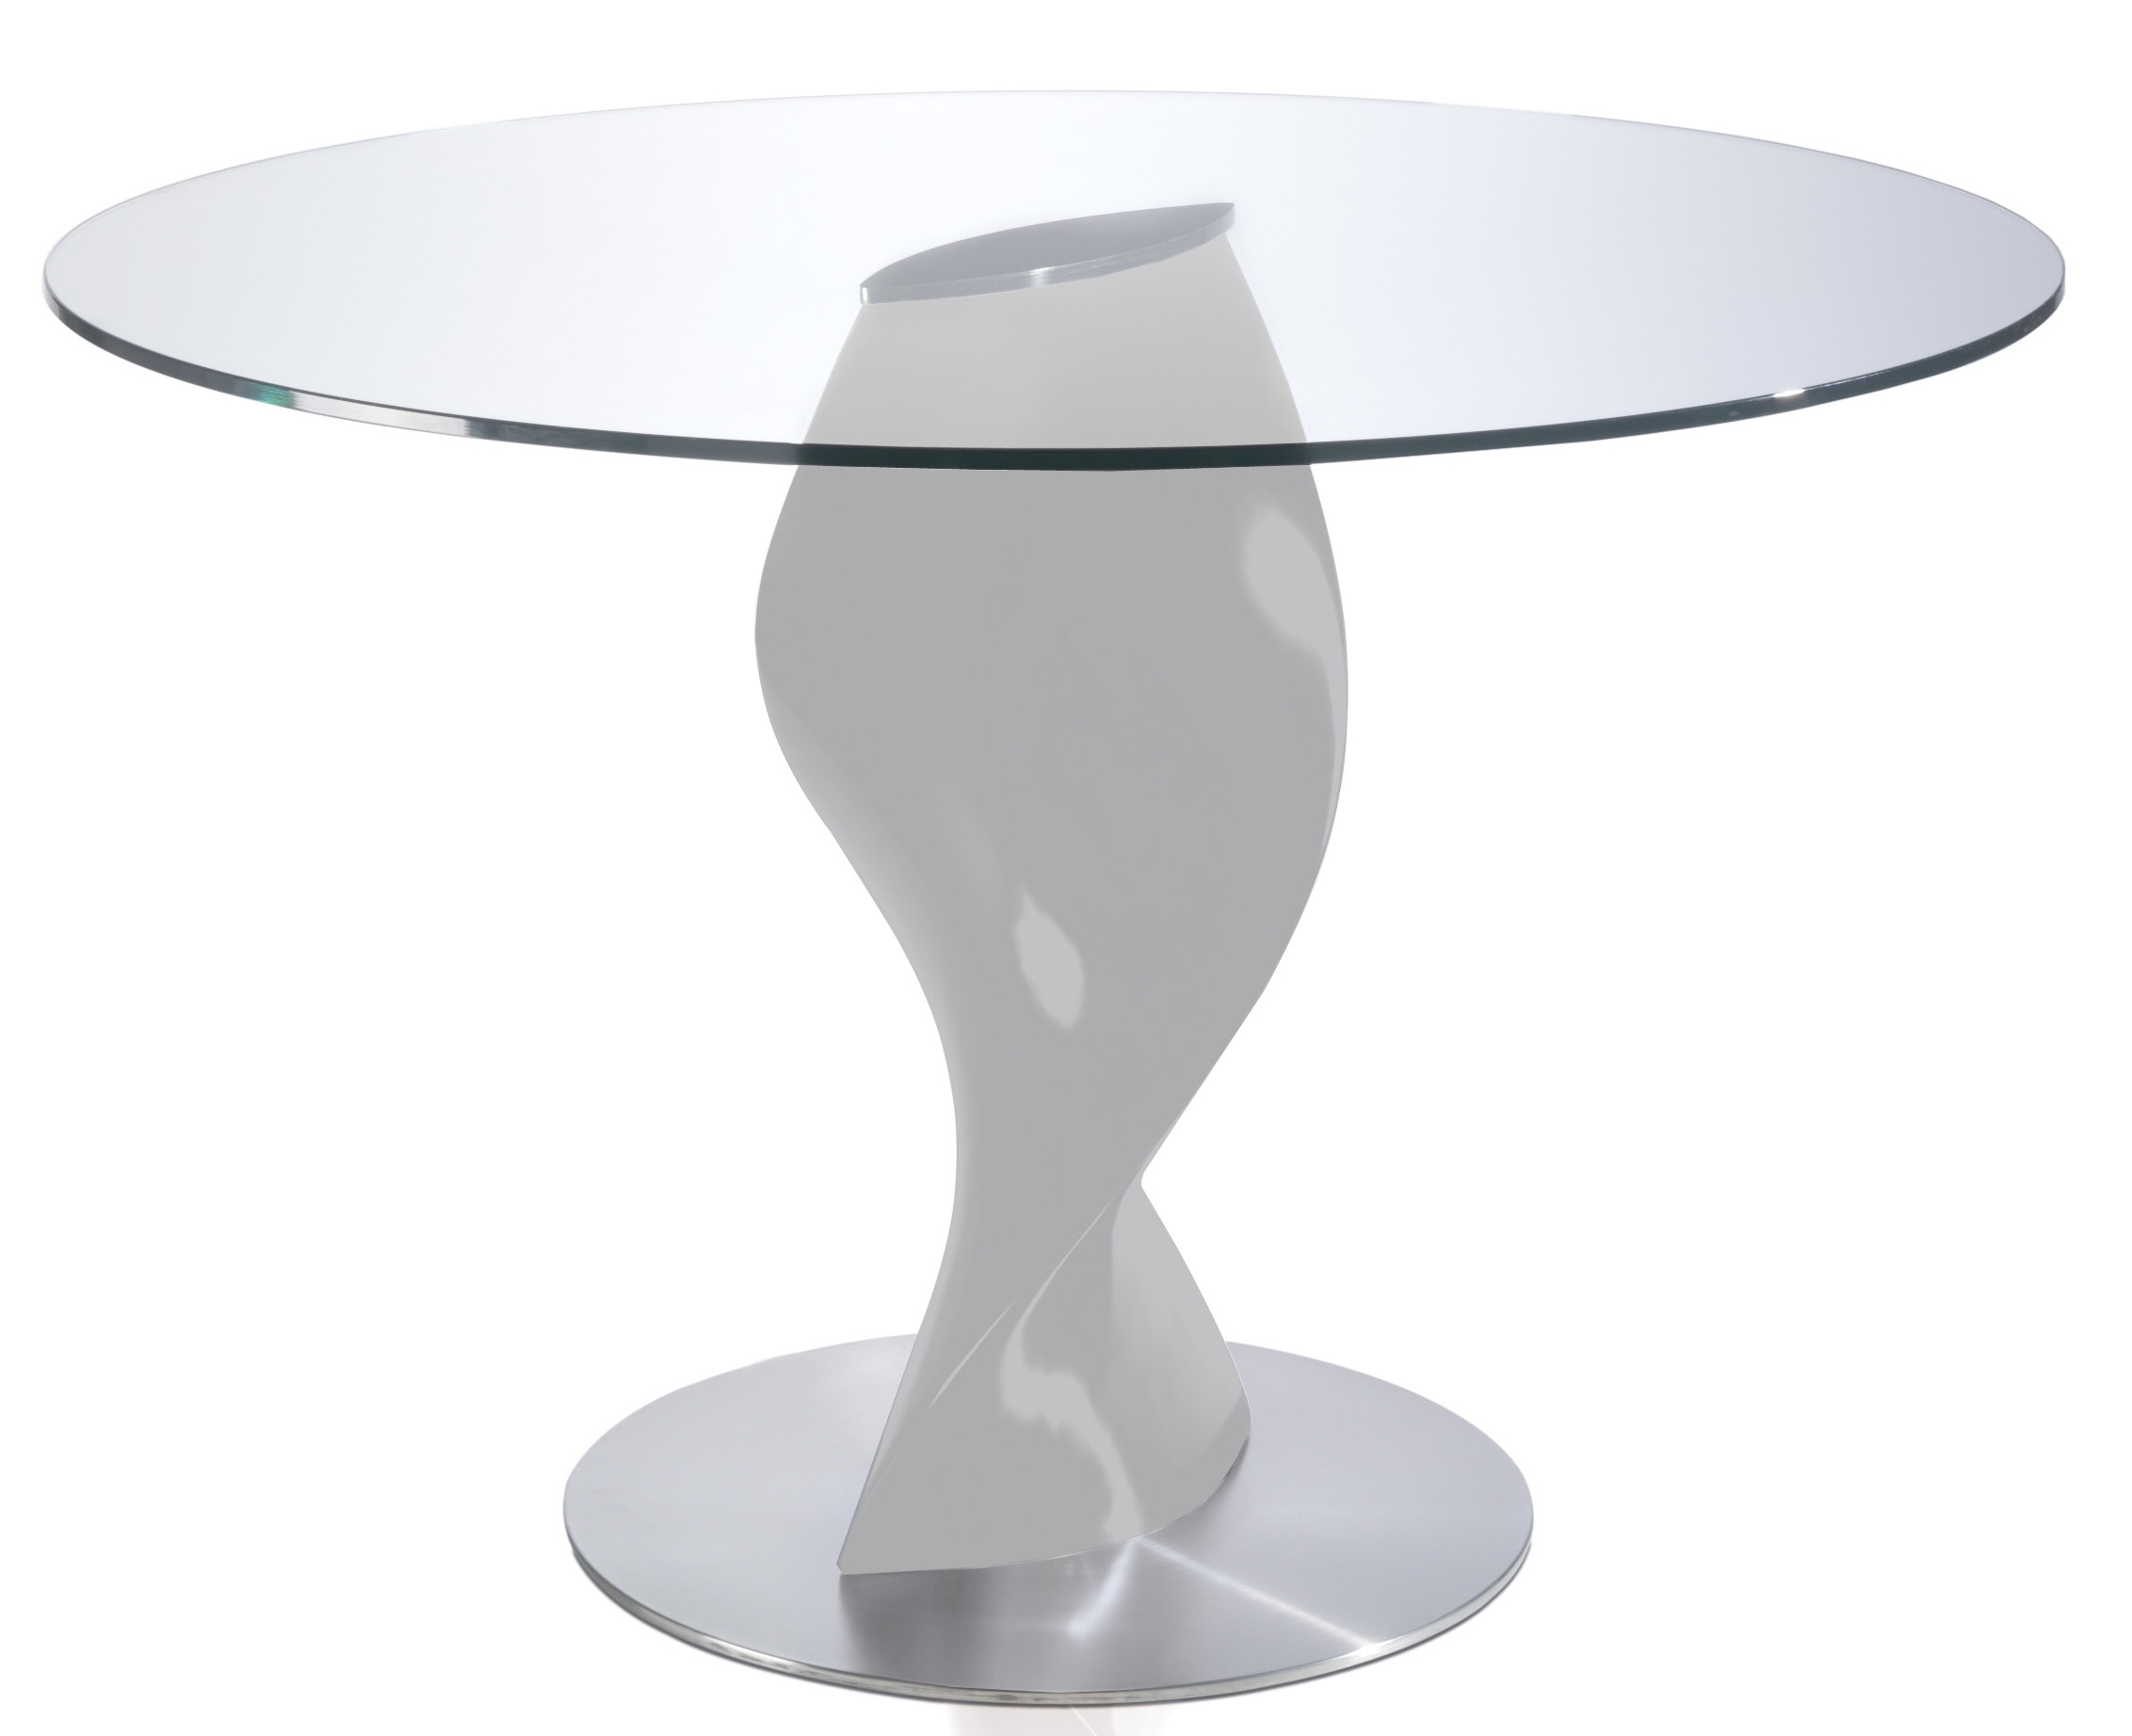 Table ronde laqu e gris perle en fibre de verre torsada - Dimension table ronde ...